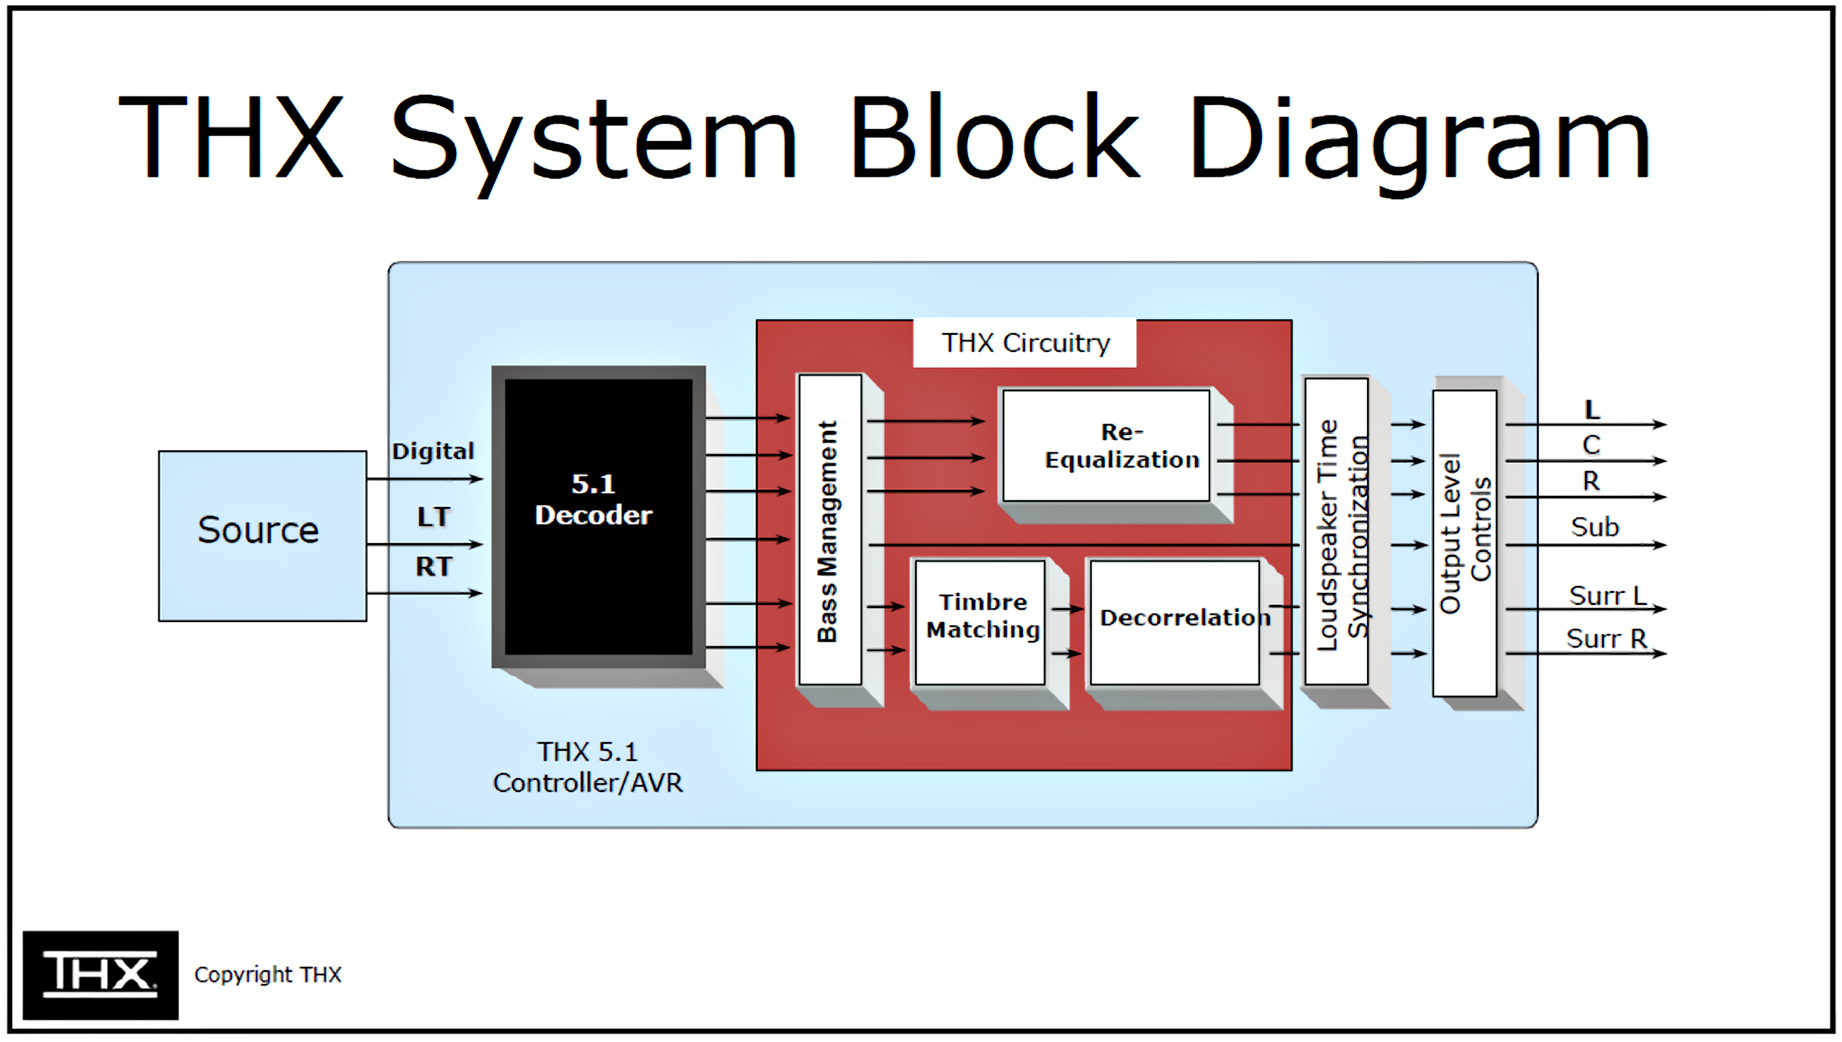 block diagram in word all you need to know about thx. | david susilo uncensored